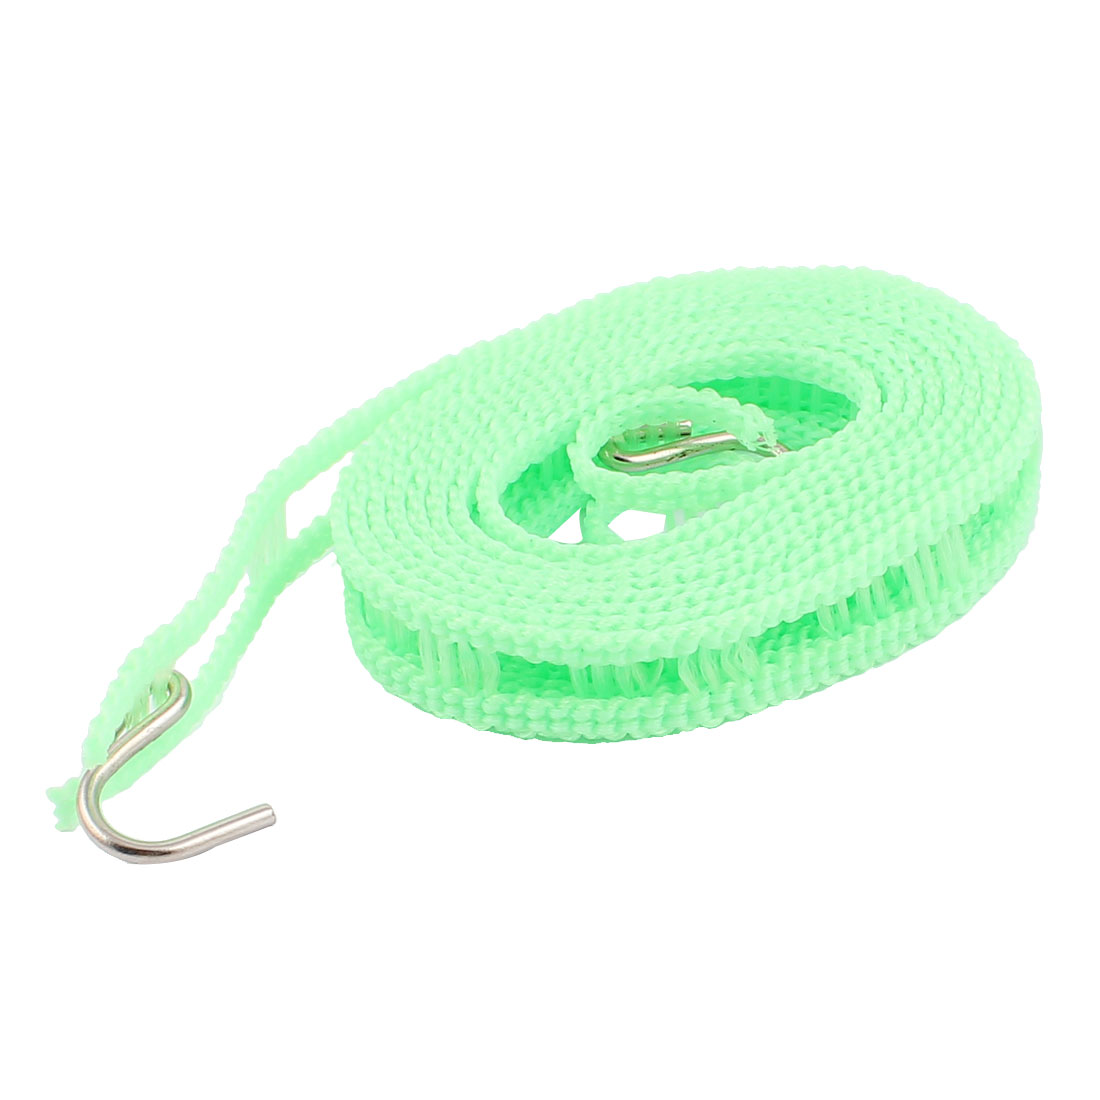 Camping Outdoor Laundry Plastic Clothesline Clothes Hanging String Rope w 2 Hooks 2M Long Green